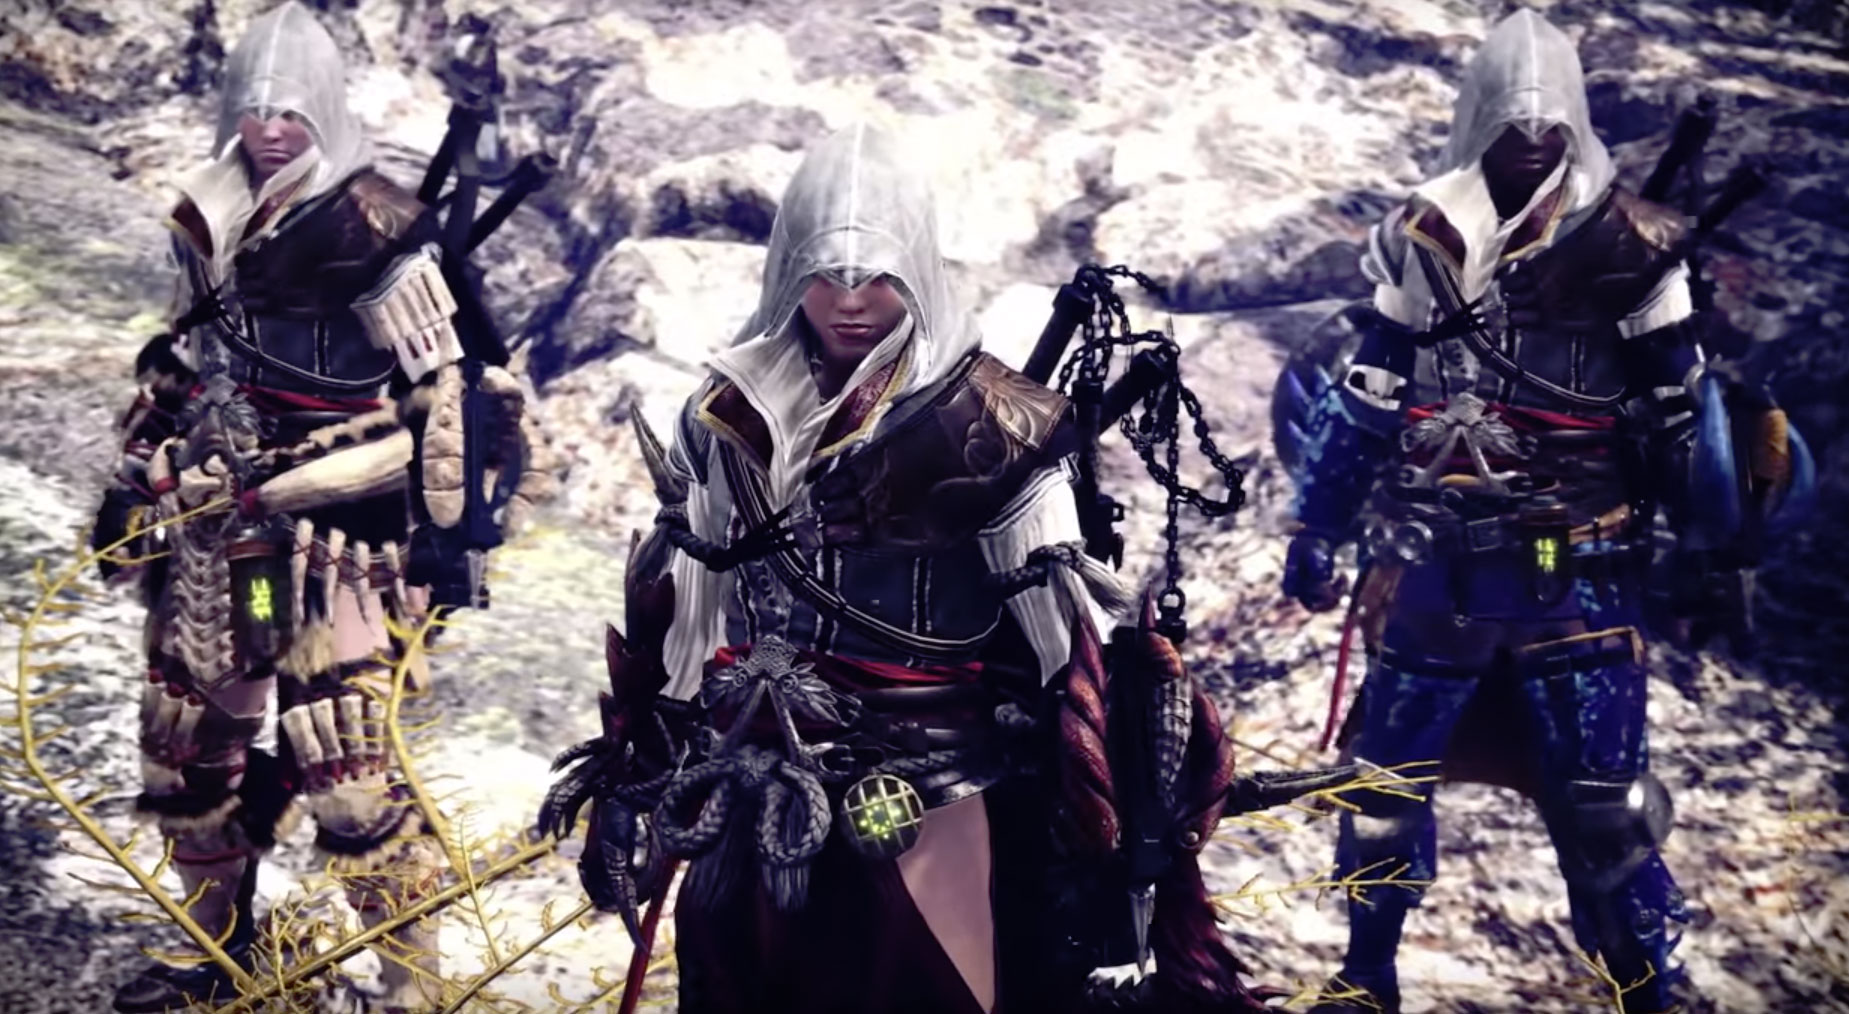 Assassin's Creed comes to Monster Hunter